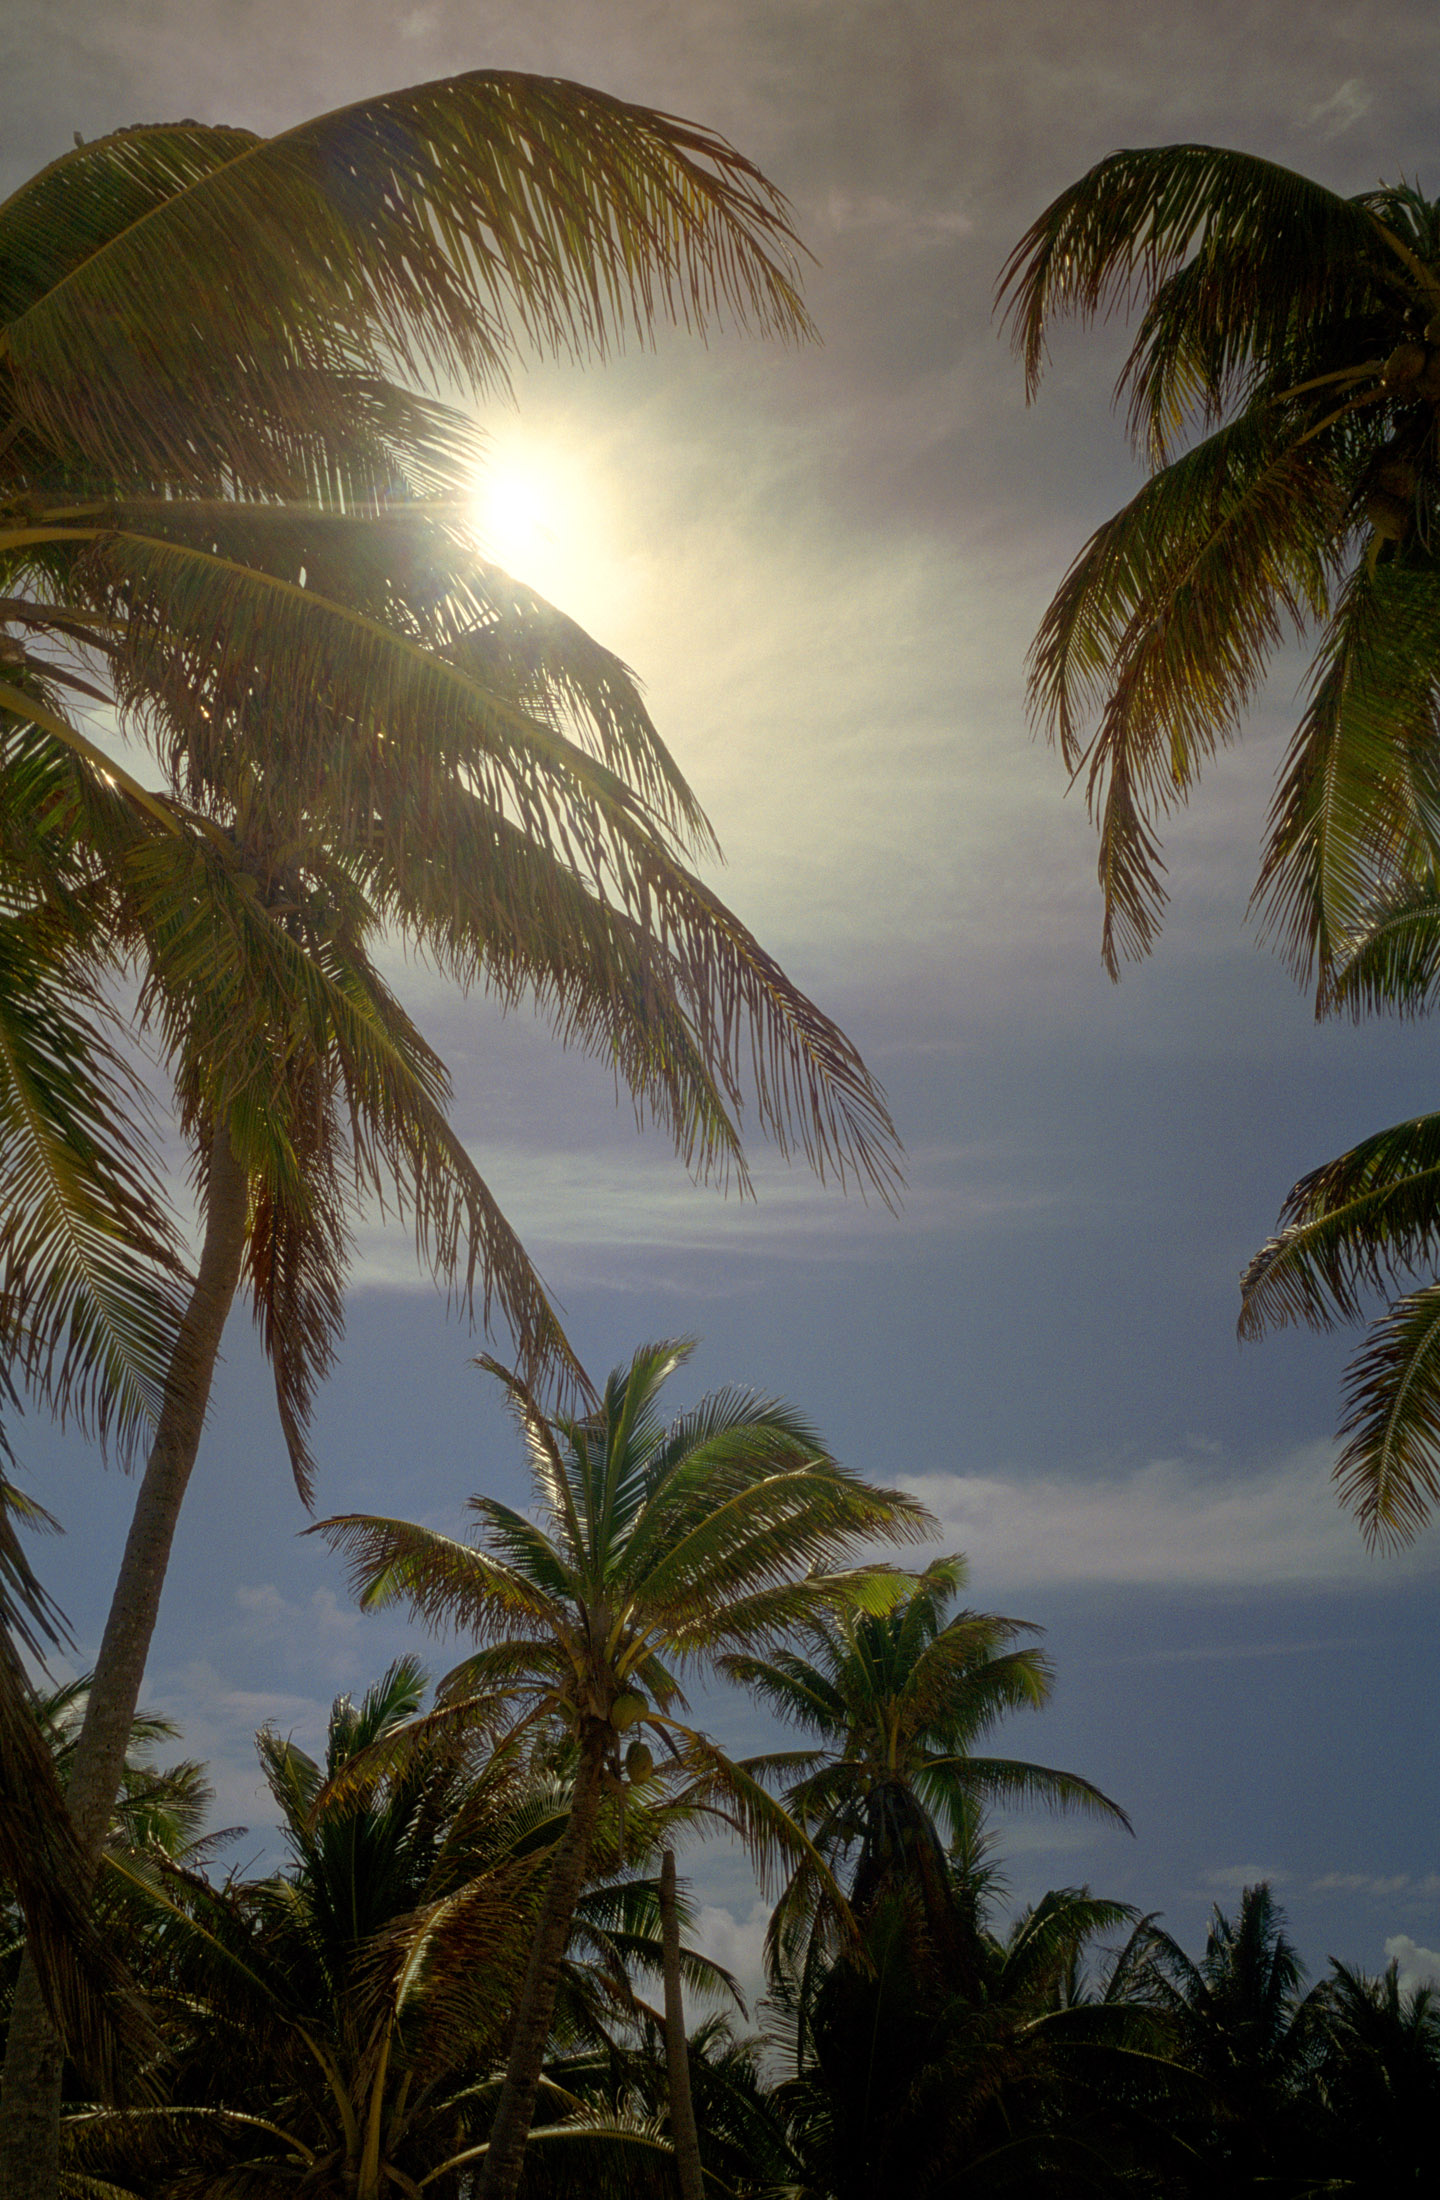 sun shining through a grove of palm trees in mexico